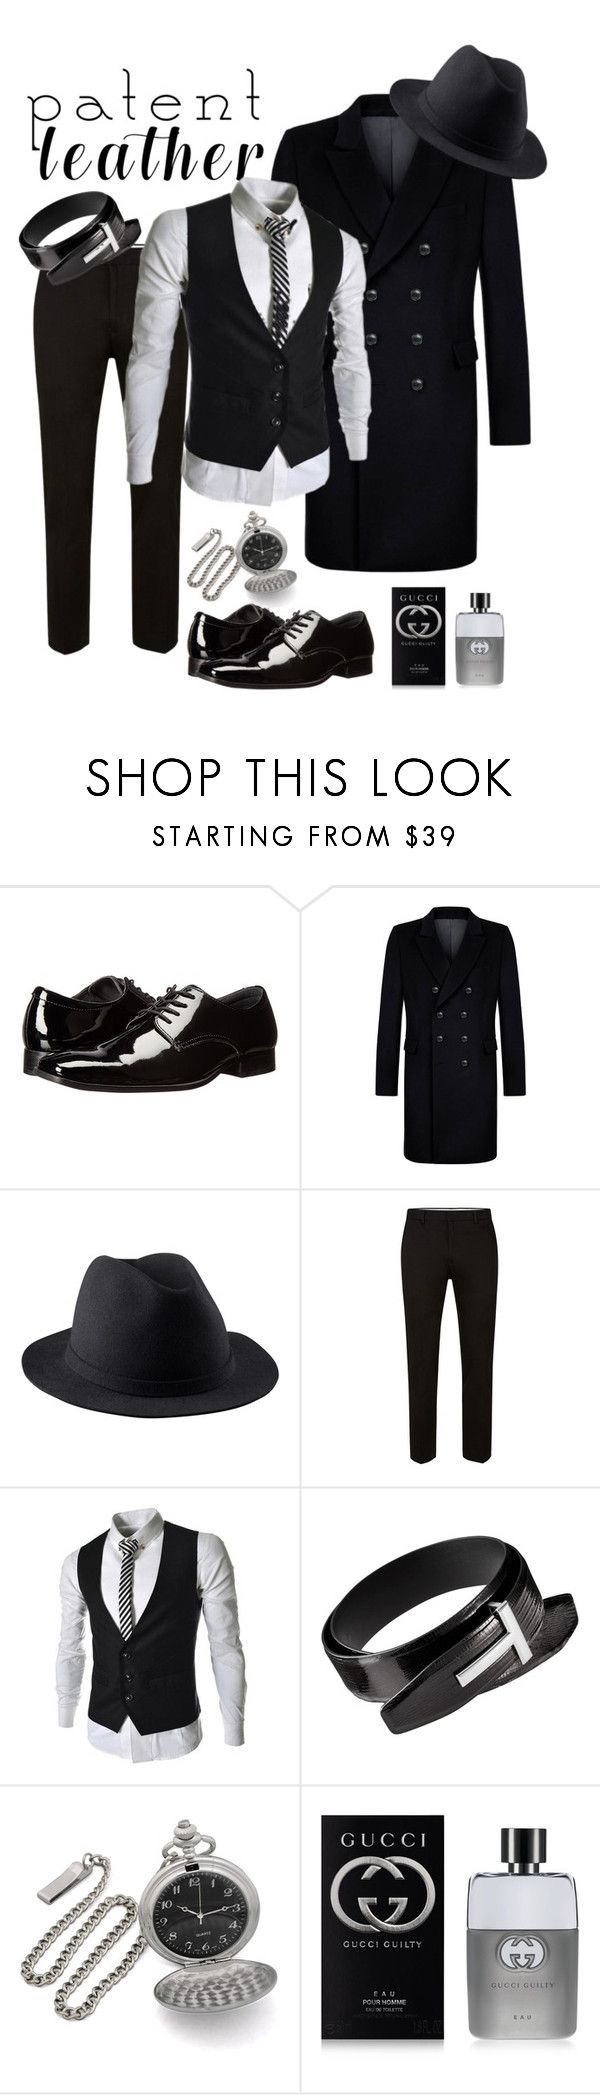 """""""Vernice - L'uomo"""" by antonio-b ❤ liked on Polyvore featuring Calvin Klein, Kumeth, A.P.C., Topman, Gucci, men's fashion and menswear"""